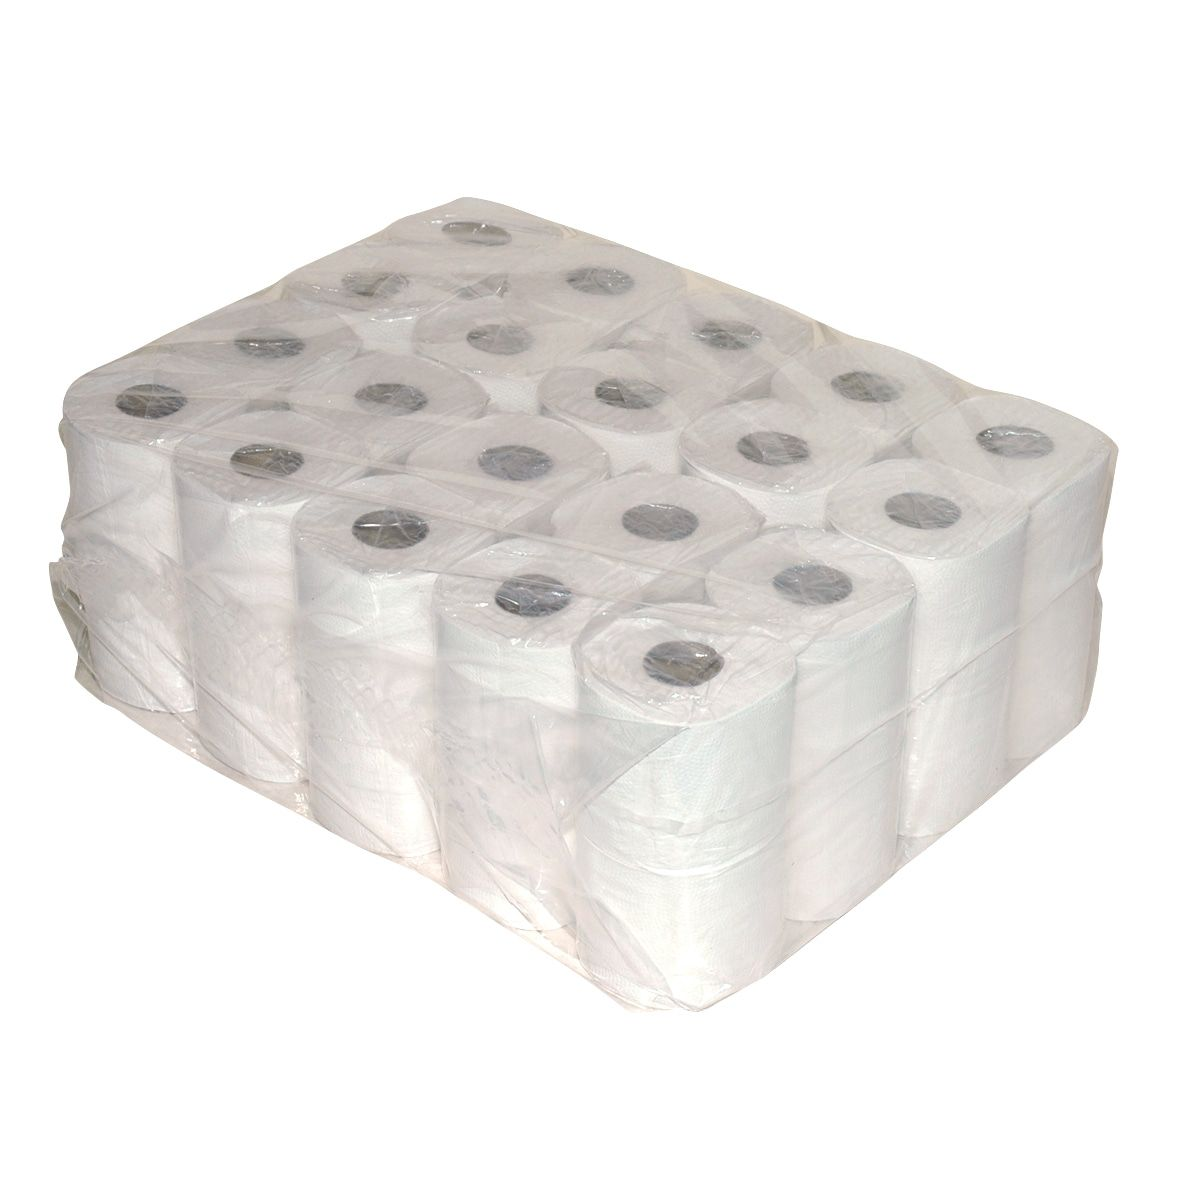 Toiletpapier 238240 Tissue Recycled Wit 2laags 40rollen (238240)